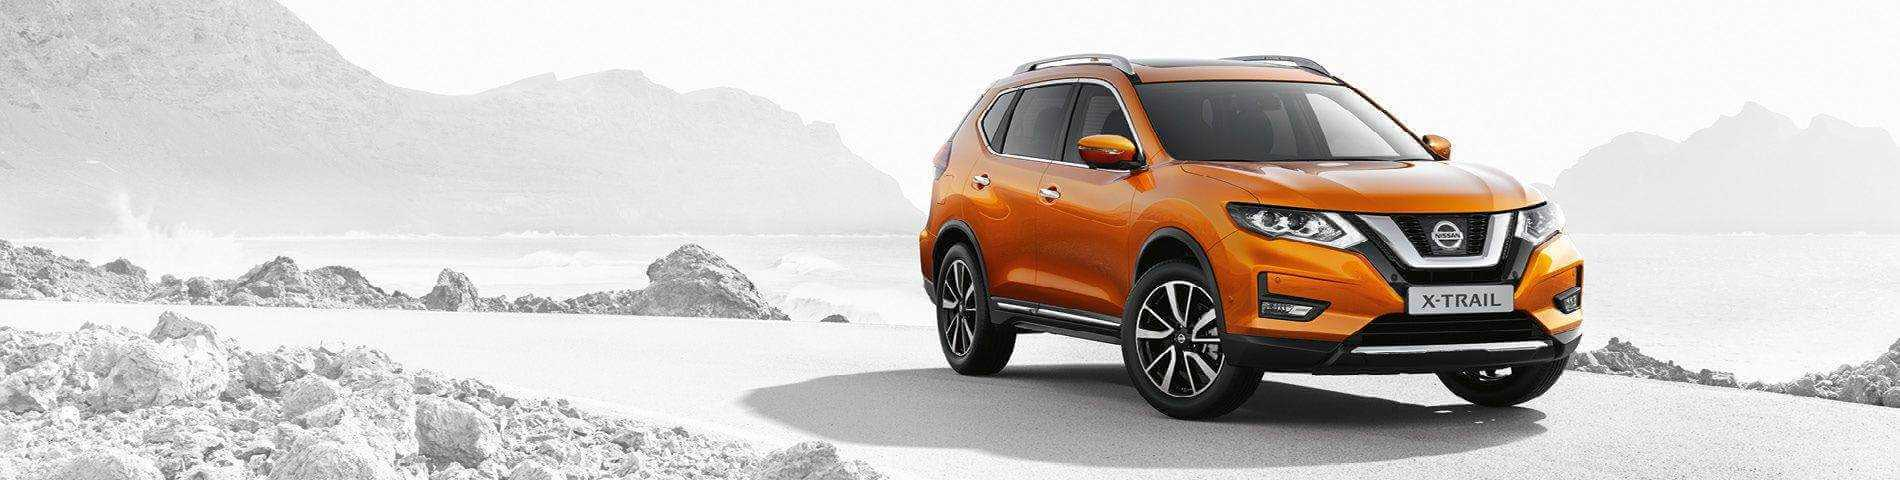 X-Trail Leasing Offer